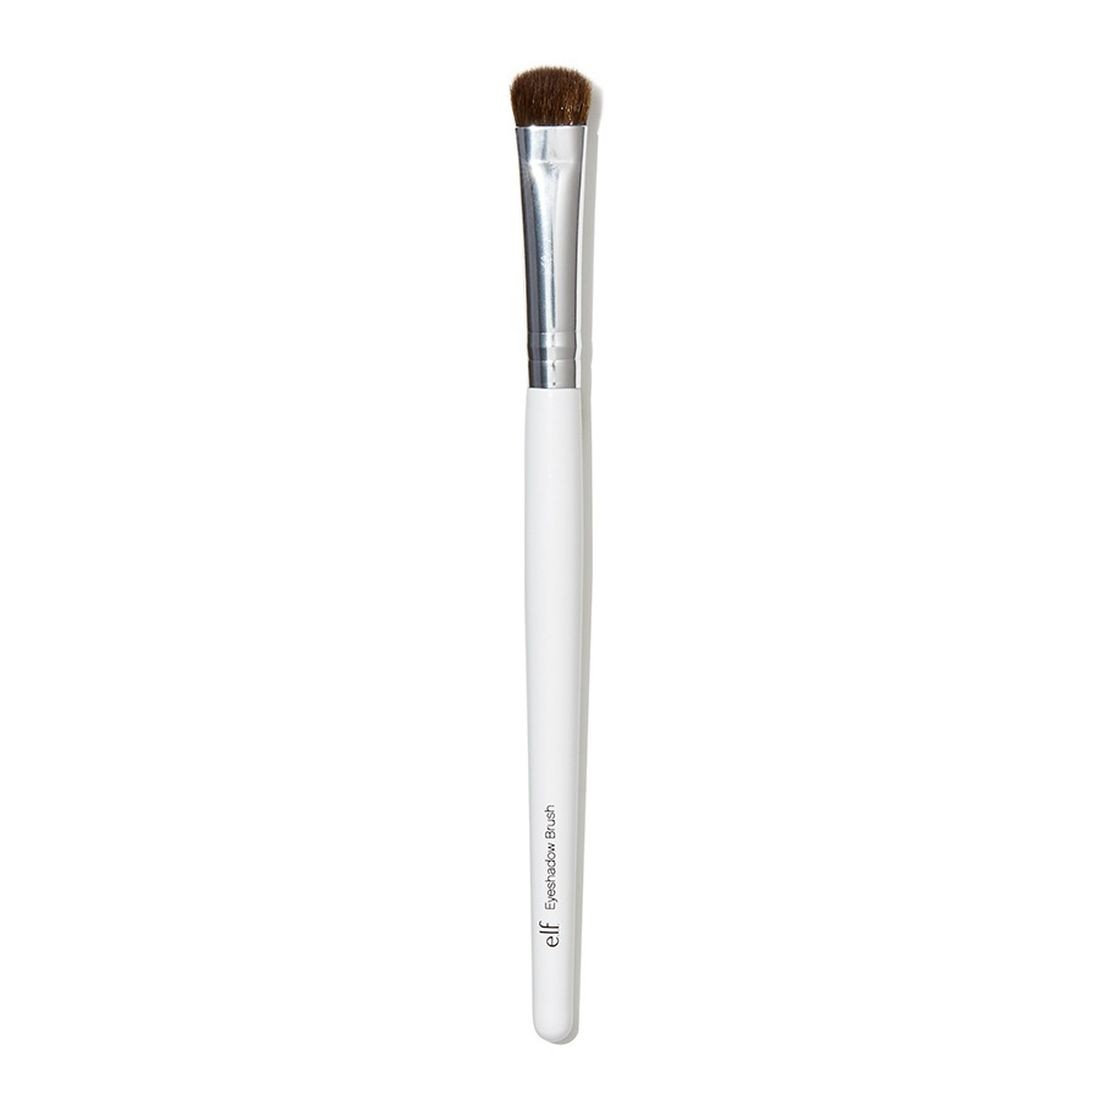 Pinceau Fard à Paupières - Eyeshadow Brush